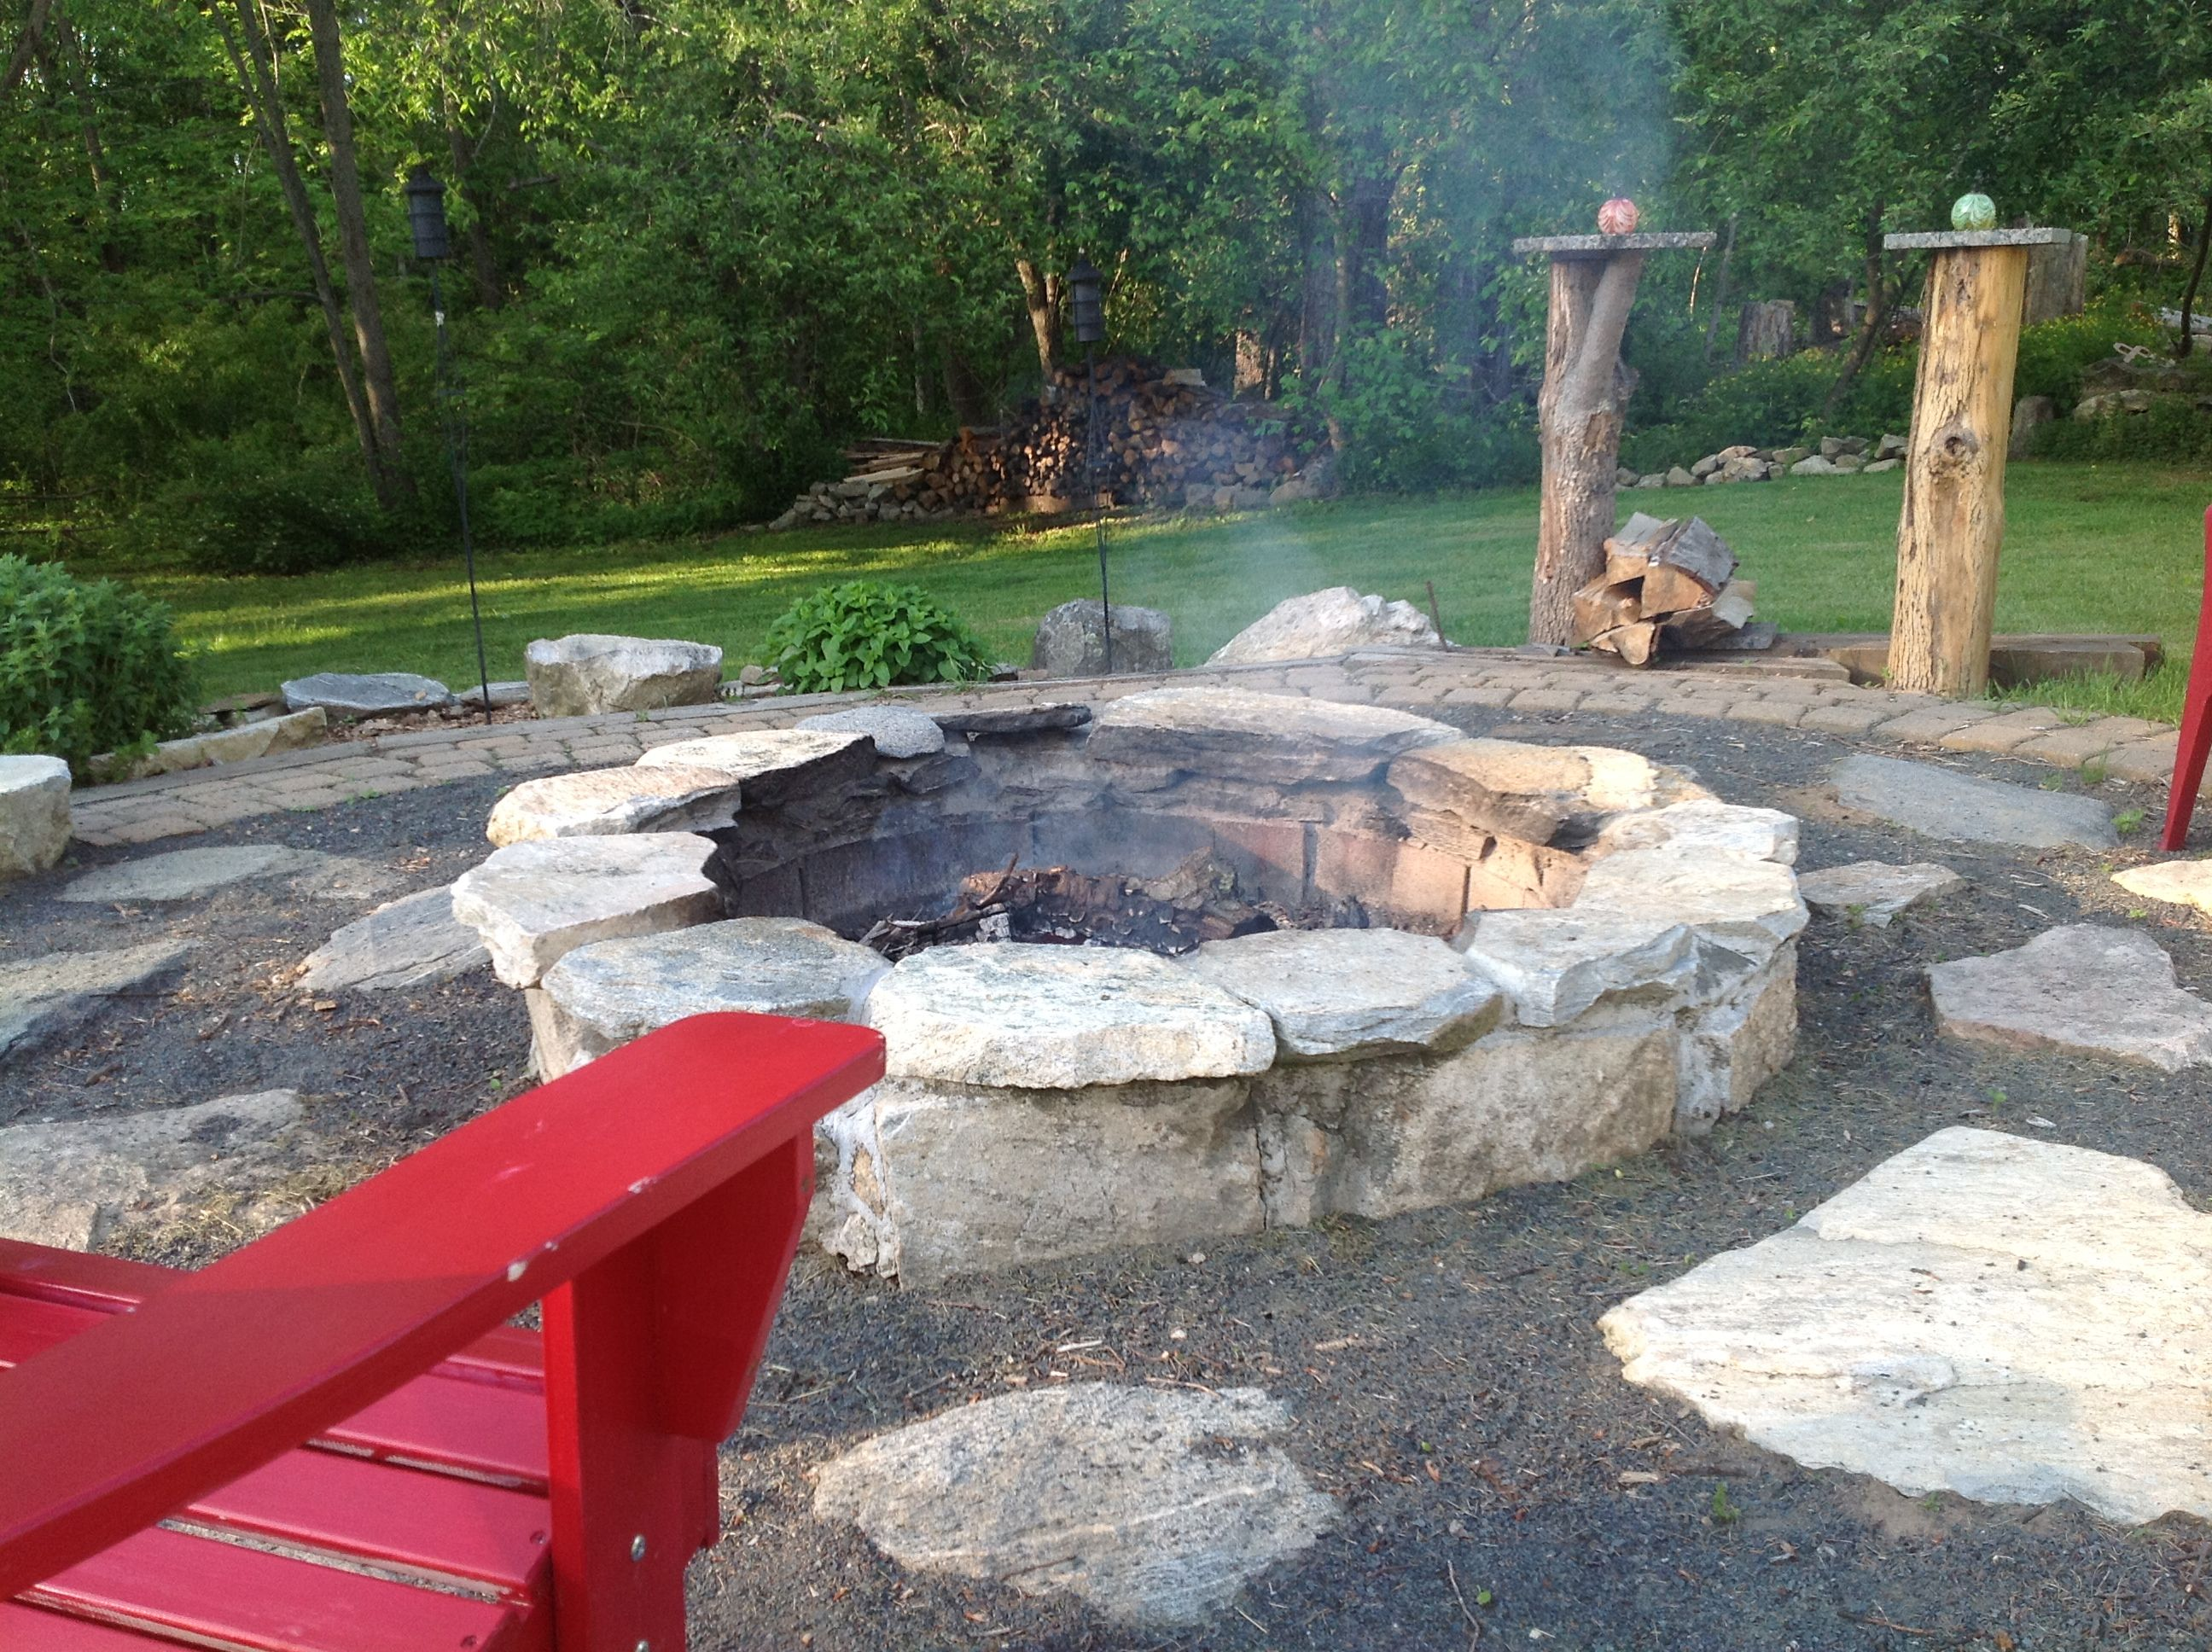 Diy Fire Pit Used Flat Rocks And Square Brick We Already Had In Our Back Yard Fire Pit Fire Pit Backyard Square Fire Pit